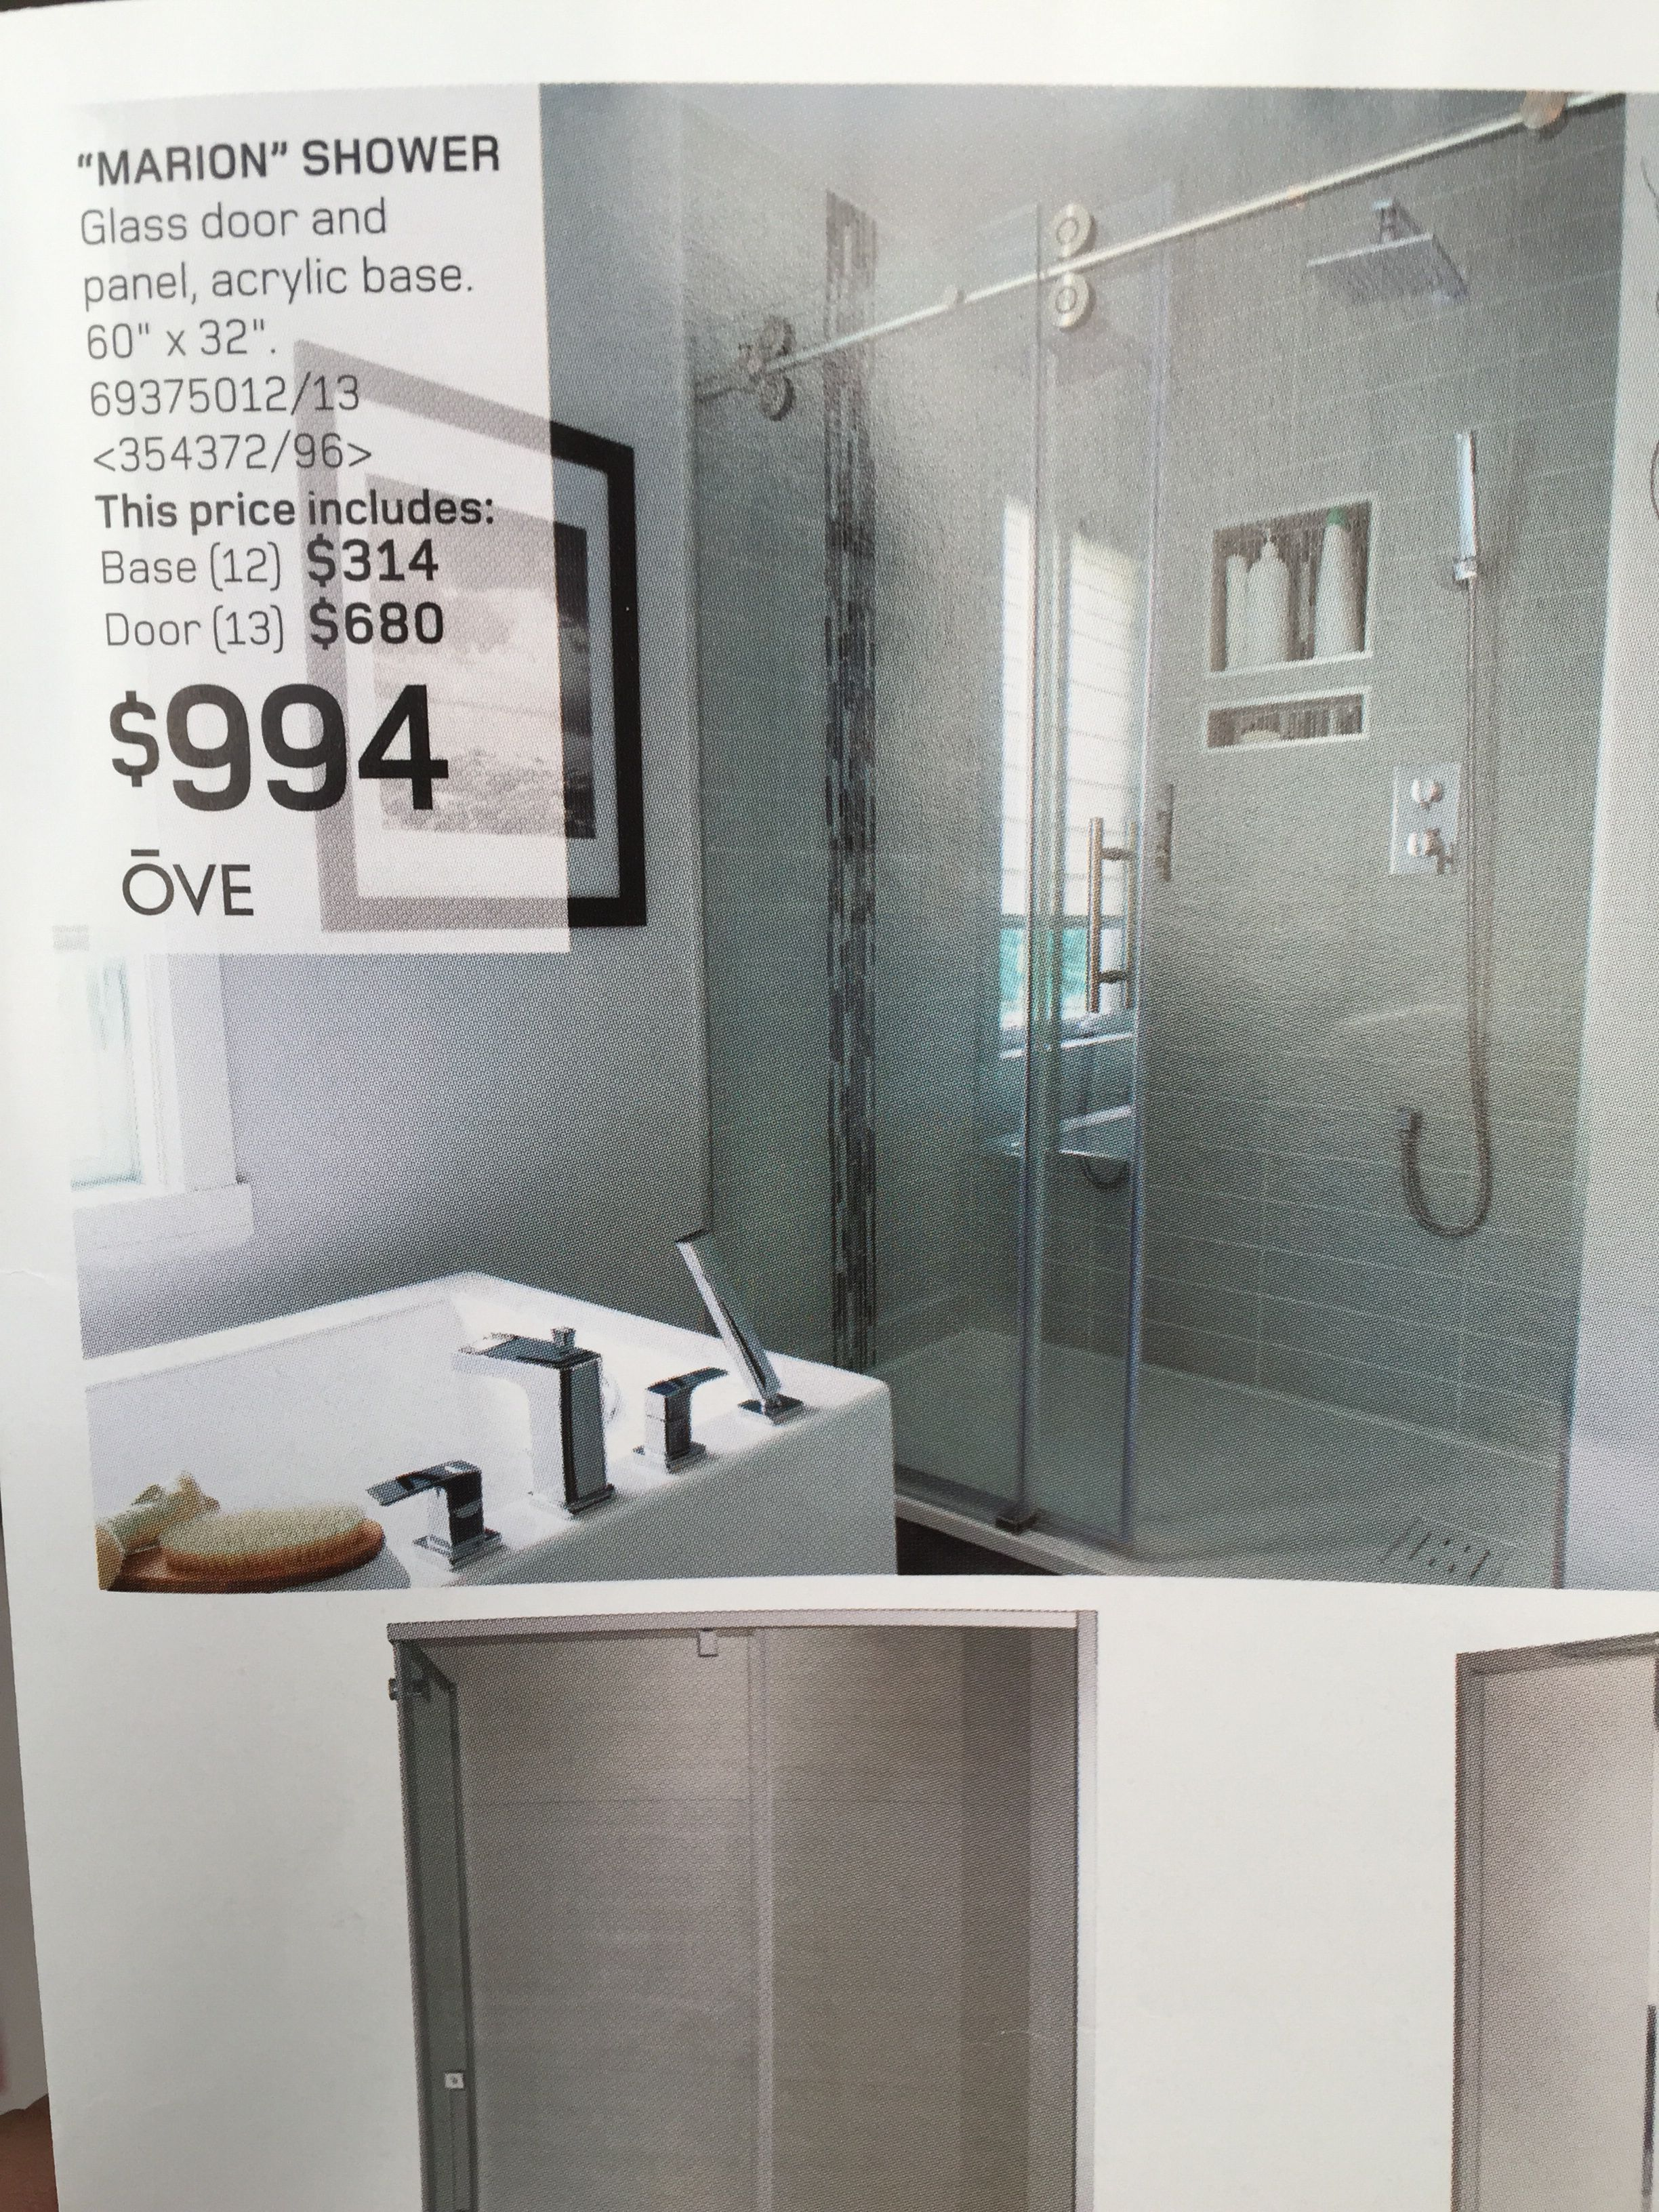 From Rona Flyer Feb 28 Glass Shower Glass Shower Doors